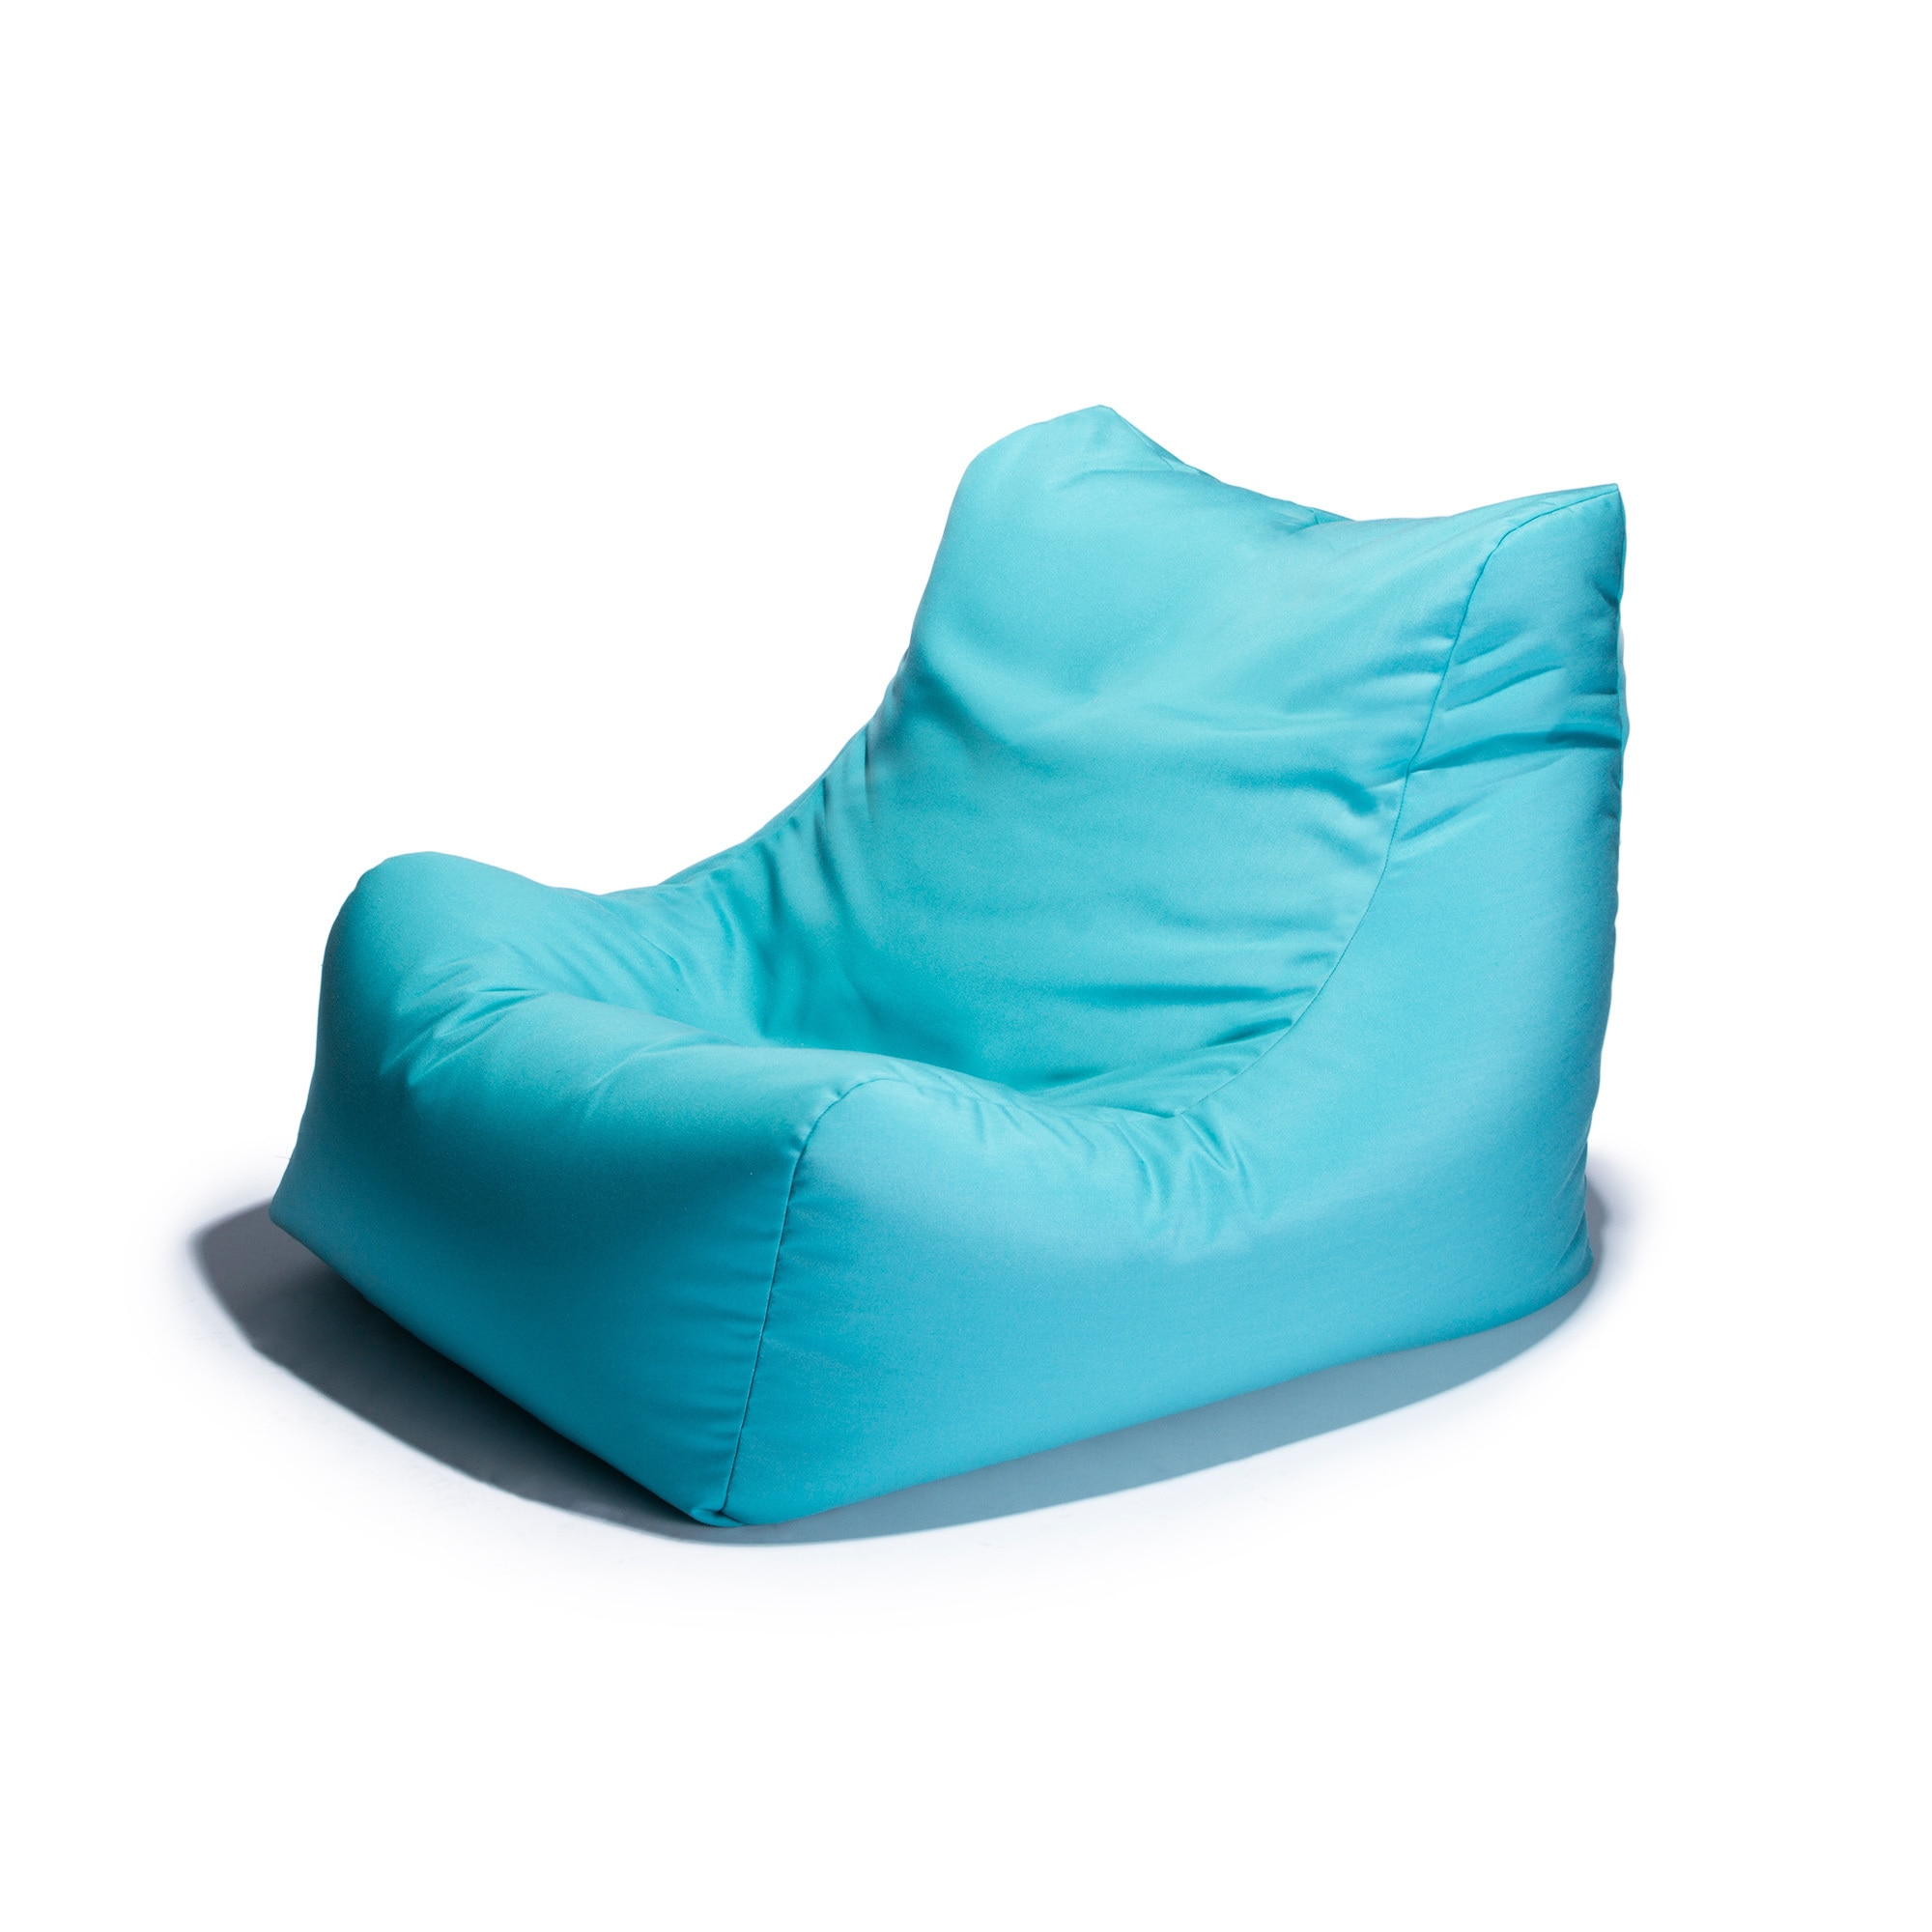 Outdoor Bean Bag Chairs Ponce Outdoor Bean Bag Chair Overstock Shopping Big